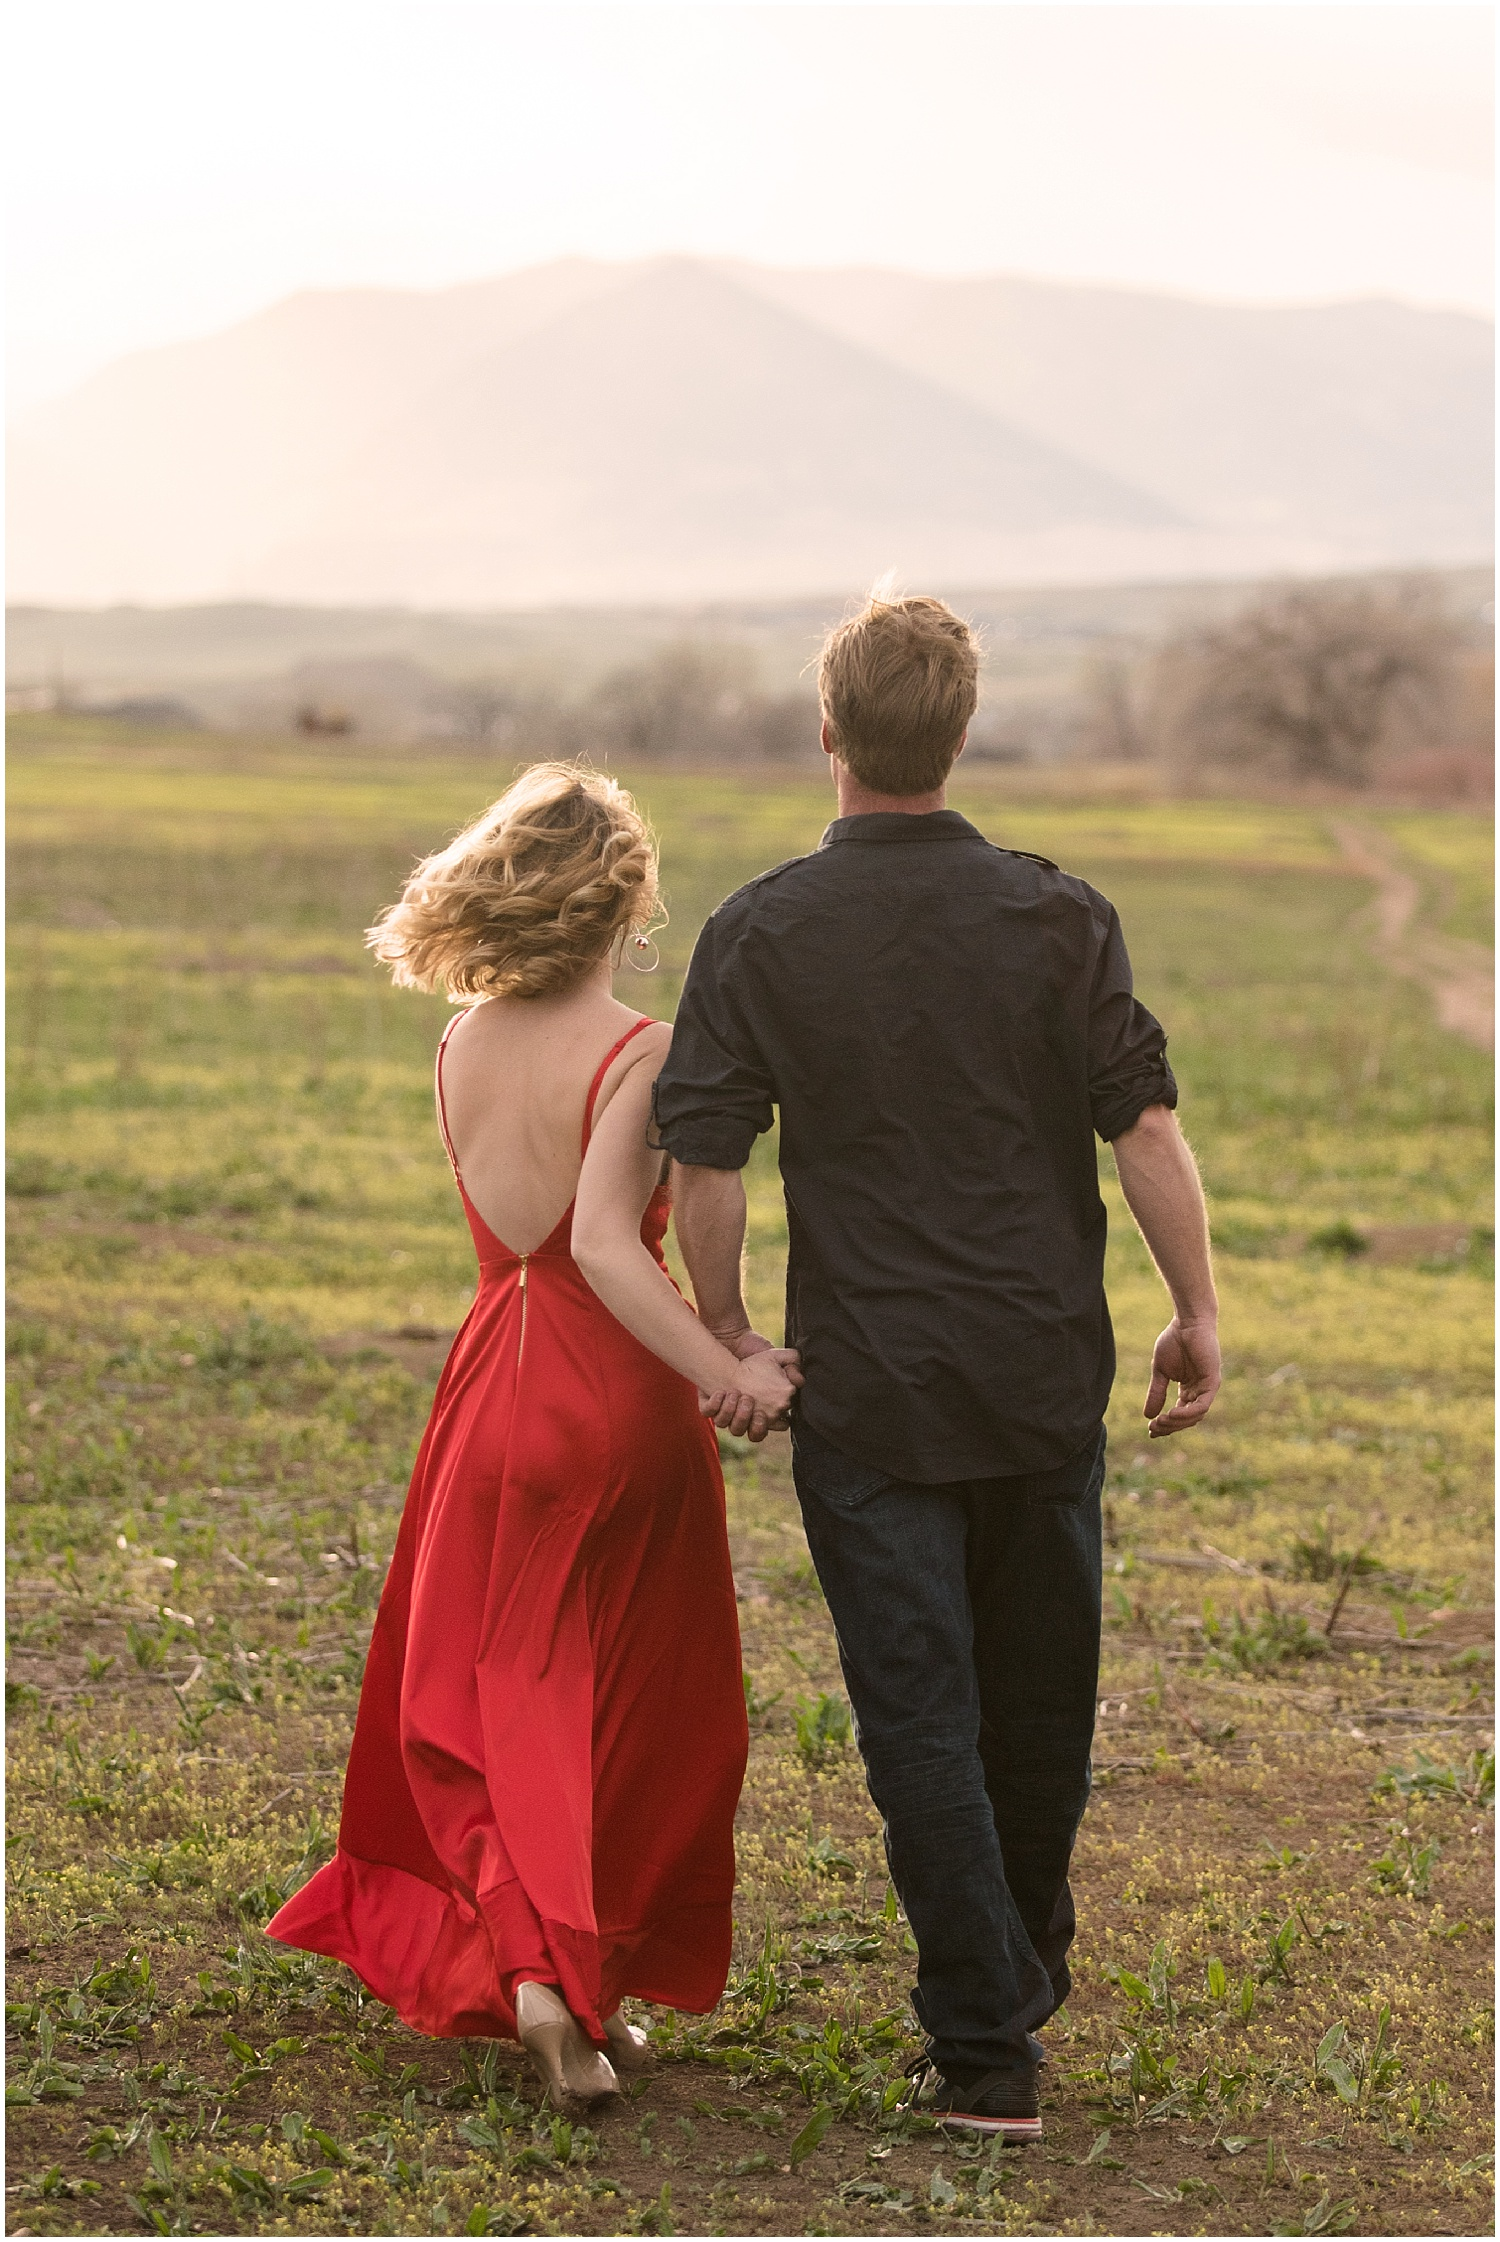 Man & Woman Walking | Dirt Bike Engagement Session | Colorado Adventure Engagement Photographer | Rocky Mountain Elopement Photography | Farm Wedding Photographer | Apollo Fields Photojournalism